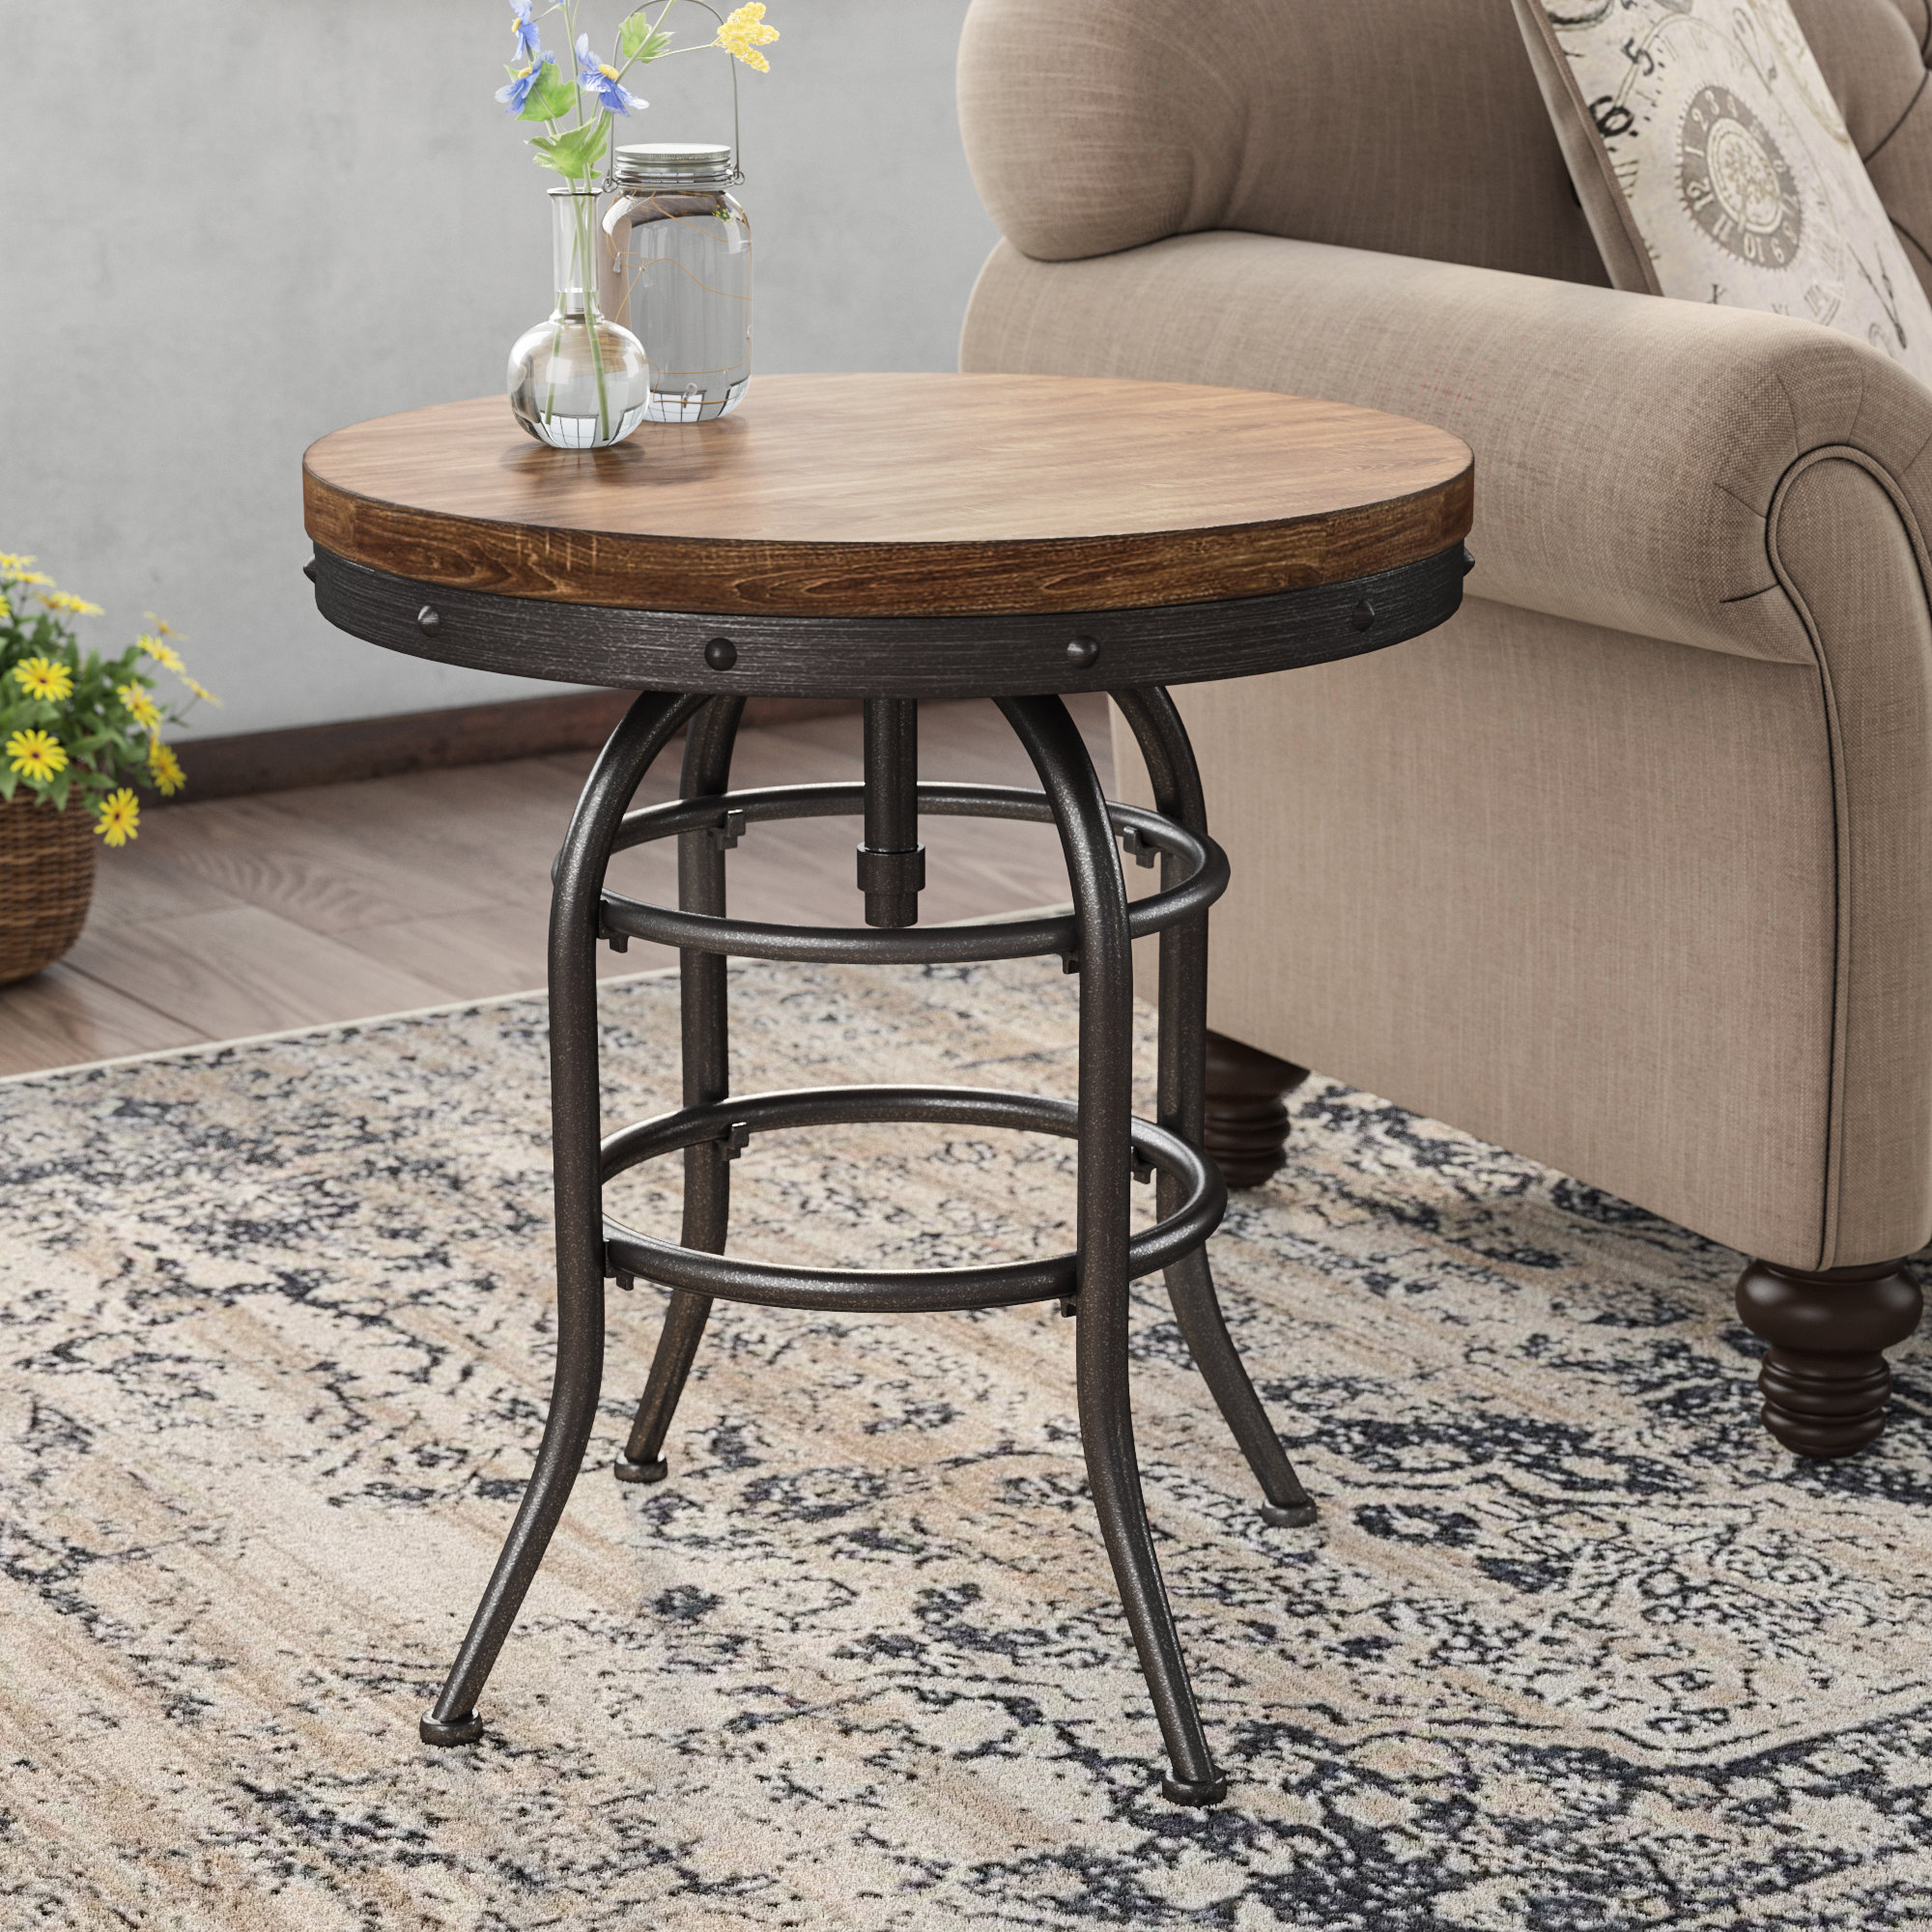 laurel foundry modern farmhouse likens end table reviews iron black nest tables glass for two riverside hall console furniture medley coffee round pedestal antique bare wood desk